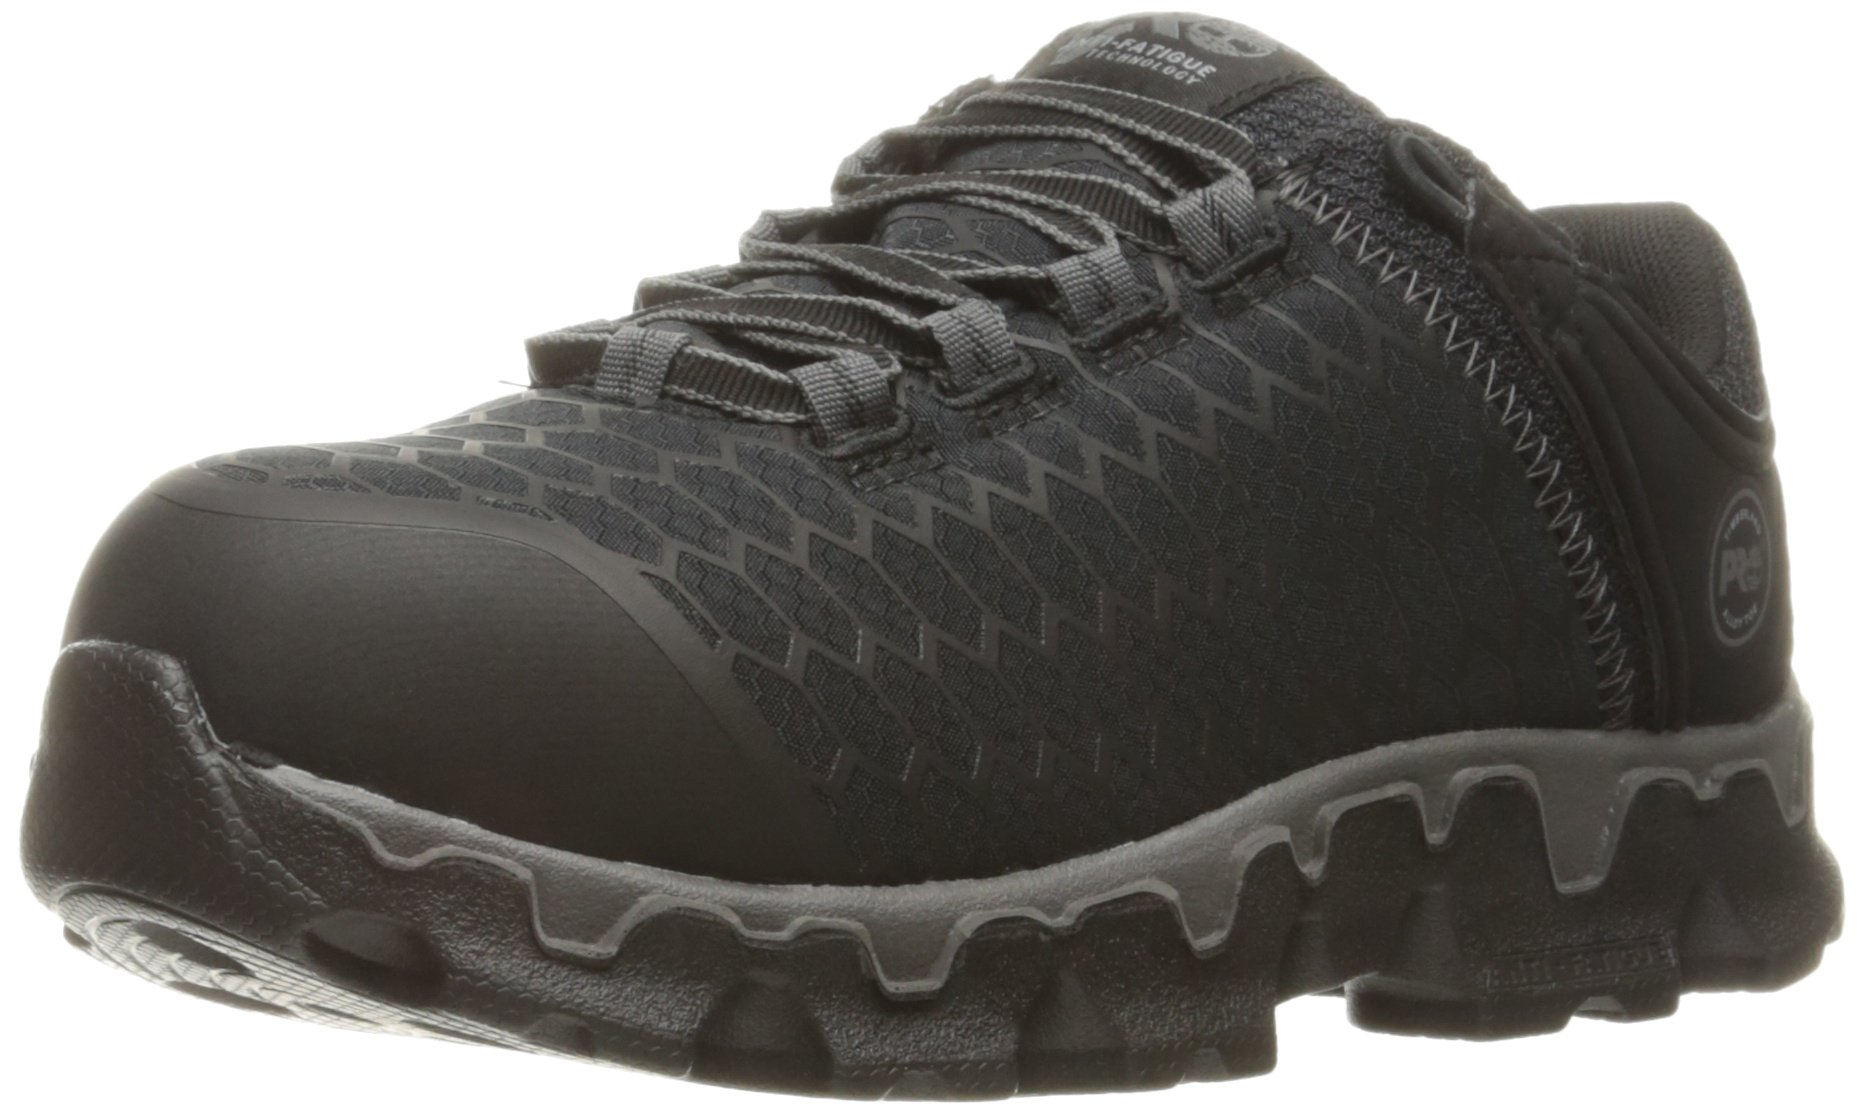 Timberland PRO Women's Powertrain Sport Alloy Toe SD+ Industrial and Construction Shoe, Black Synthetic, 6.5 M US